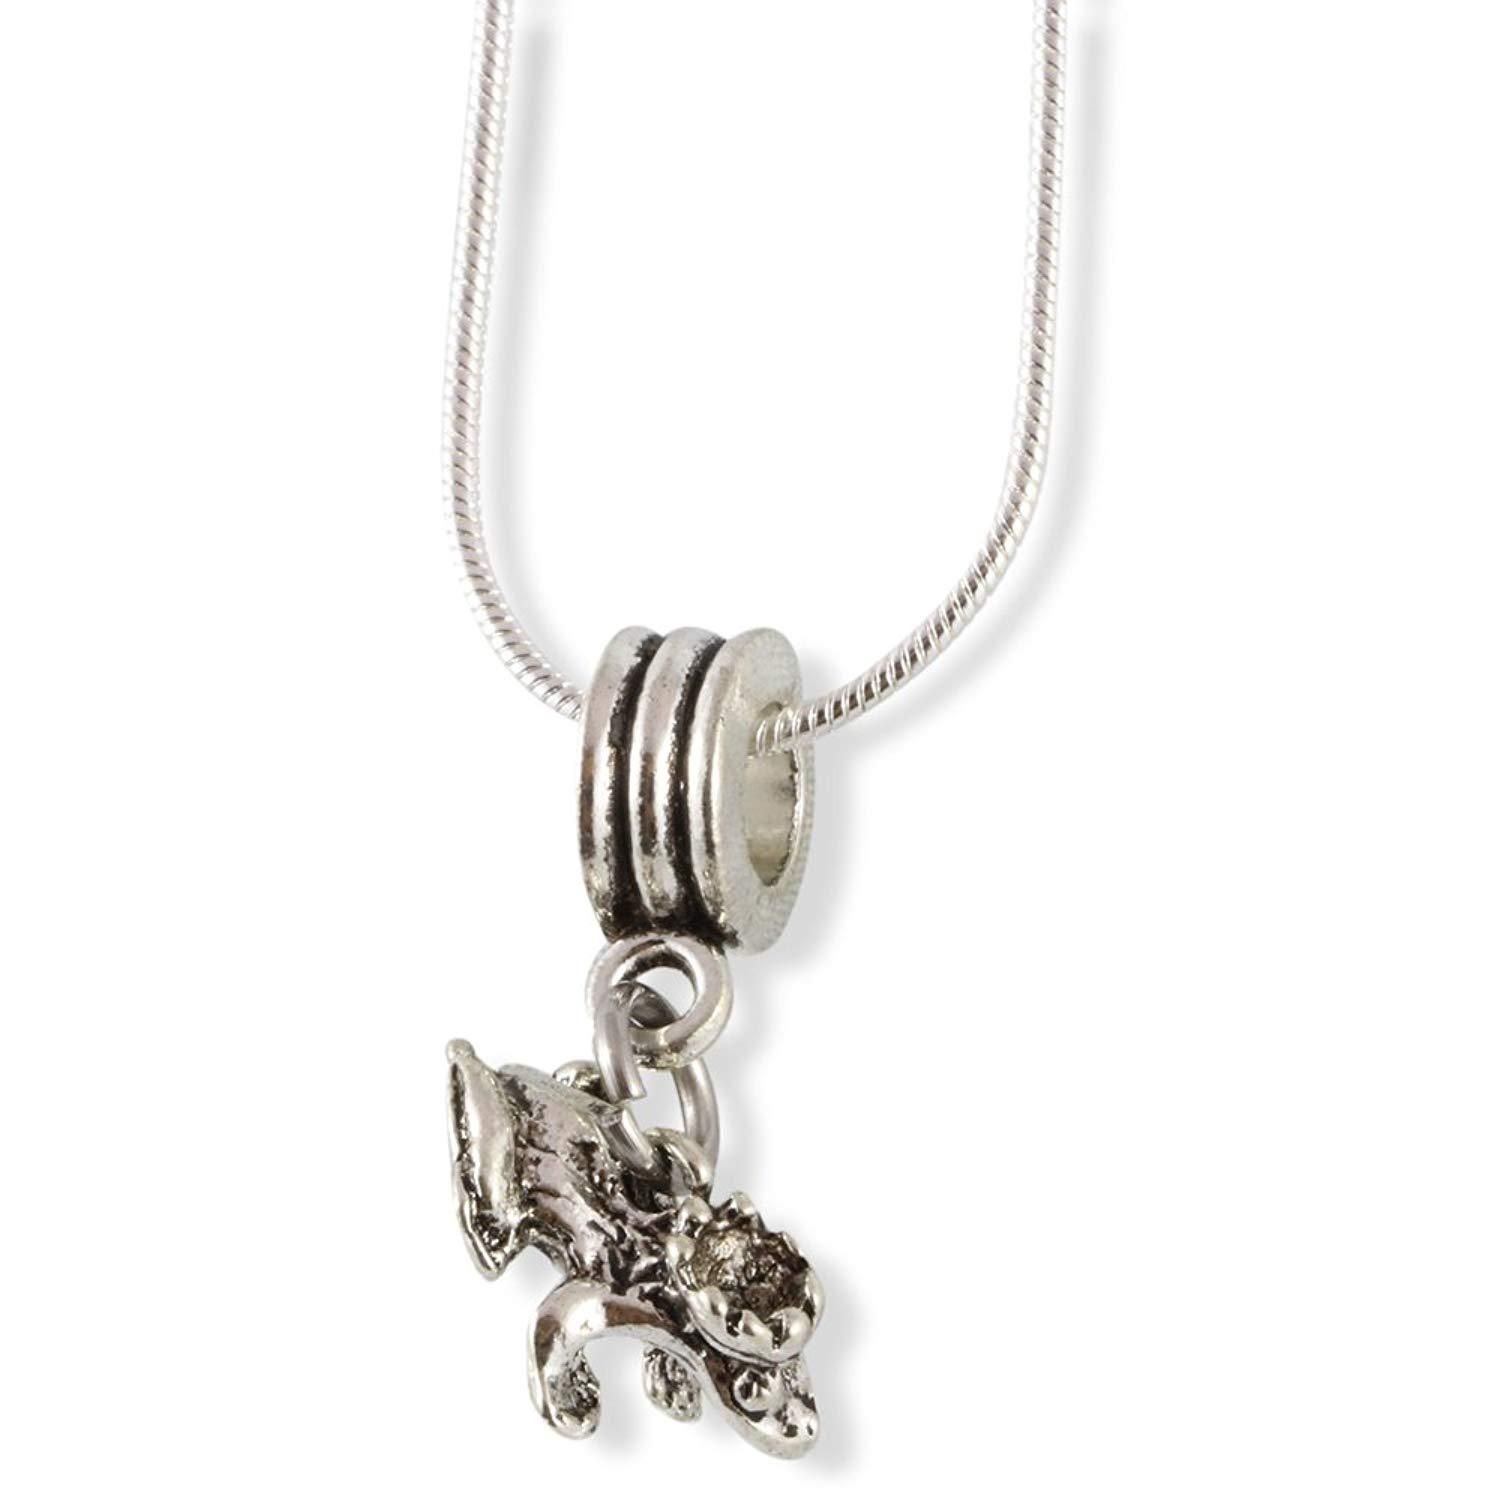 Frog Prince with Crown Snake Chain Necklace Chain